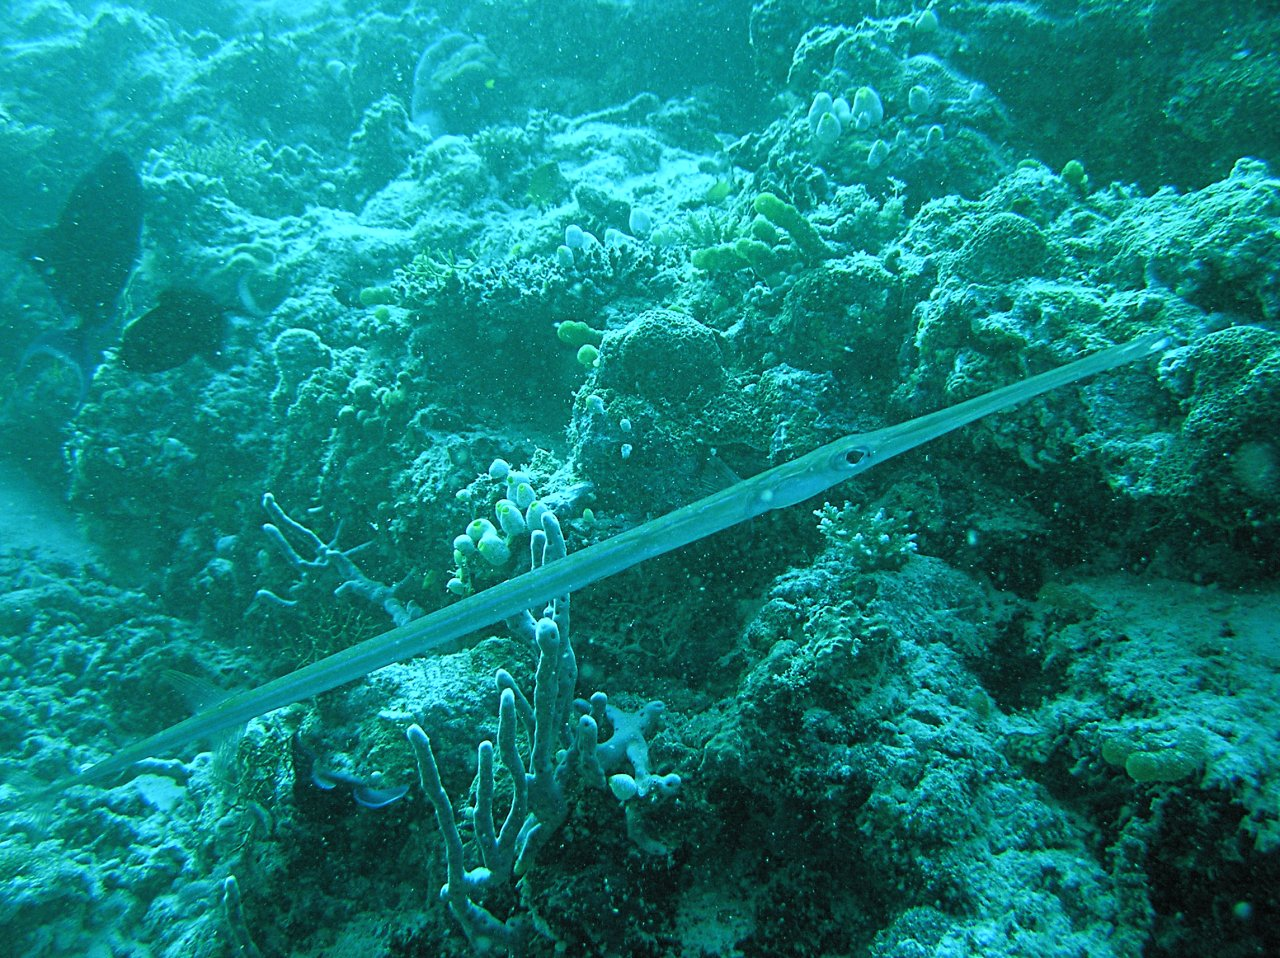 Cornetfish wallpaper